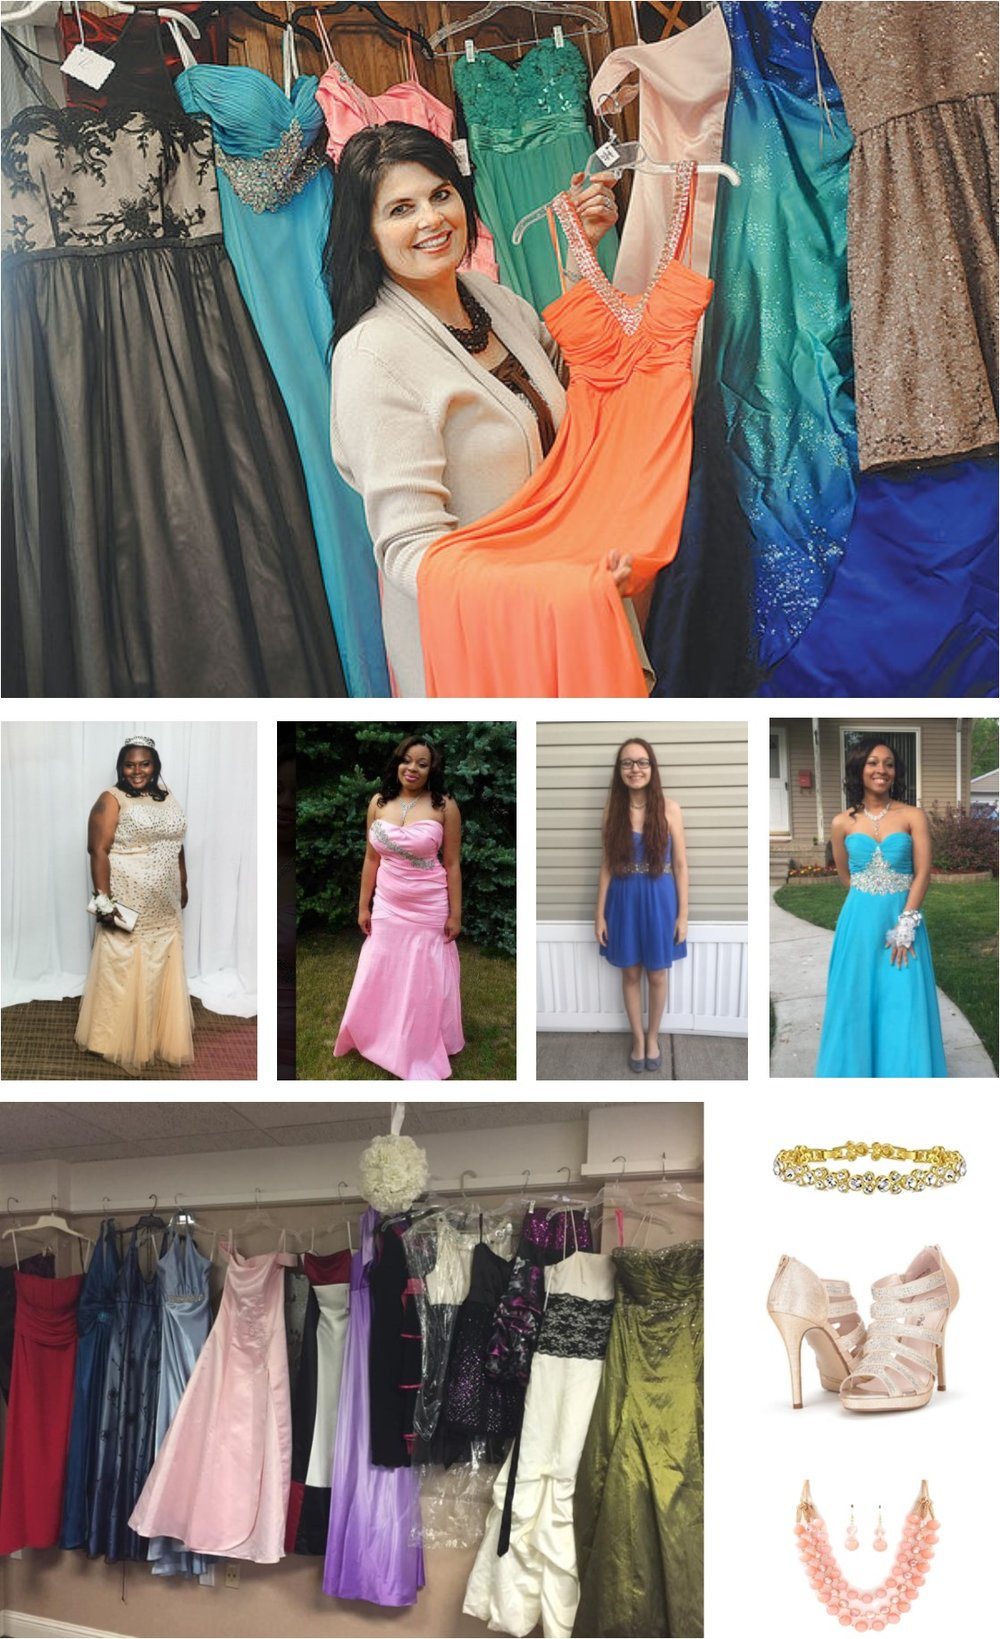 We want every woman to feel as beautiful as God sees them. - Prom Dress with a Purpose is our boutique outreach program that lends dresses, shoes and accessories to teens who need something special to wear to an event—free of charge.From prom to homecoming, we have over 150 (and counting!) new and gently used dresses in sizes 2-24 in a wide range of colors and styles to choose from.With each item we lend, we have the unique opportunity to make teens feel pampered and beautiful on their special day; showing them a snapshot of how God wants to clothe them with His strength and beauty.Click to read more about Prom Dress with a Purpose in the Farmington Press!